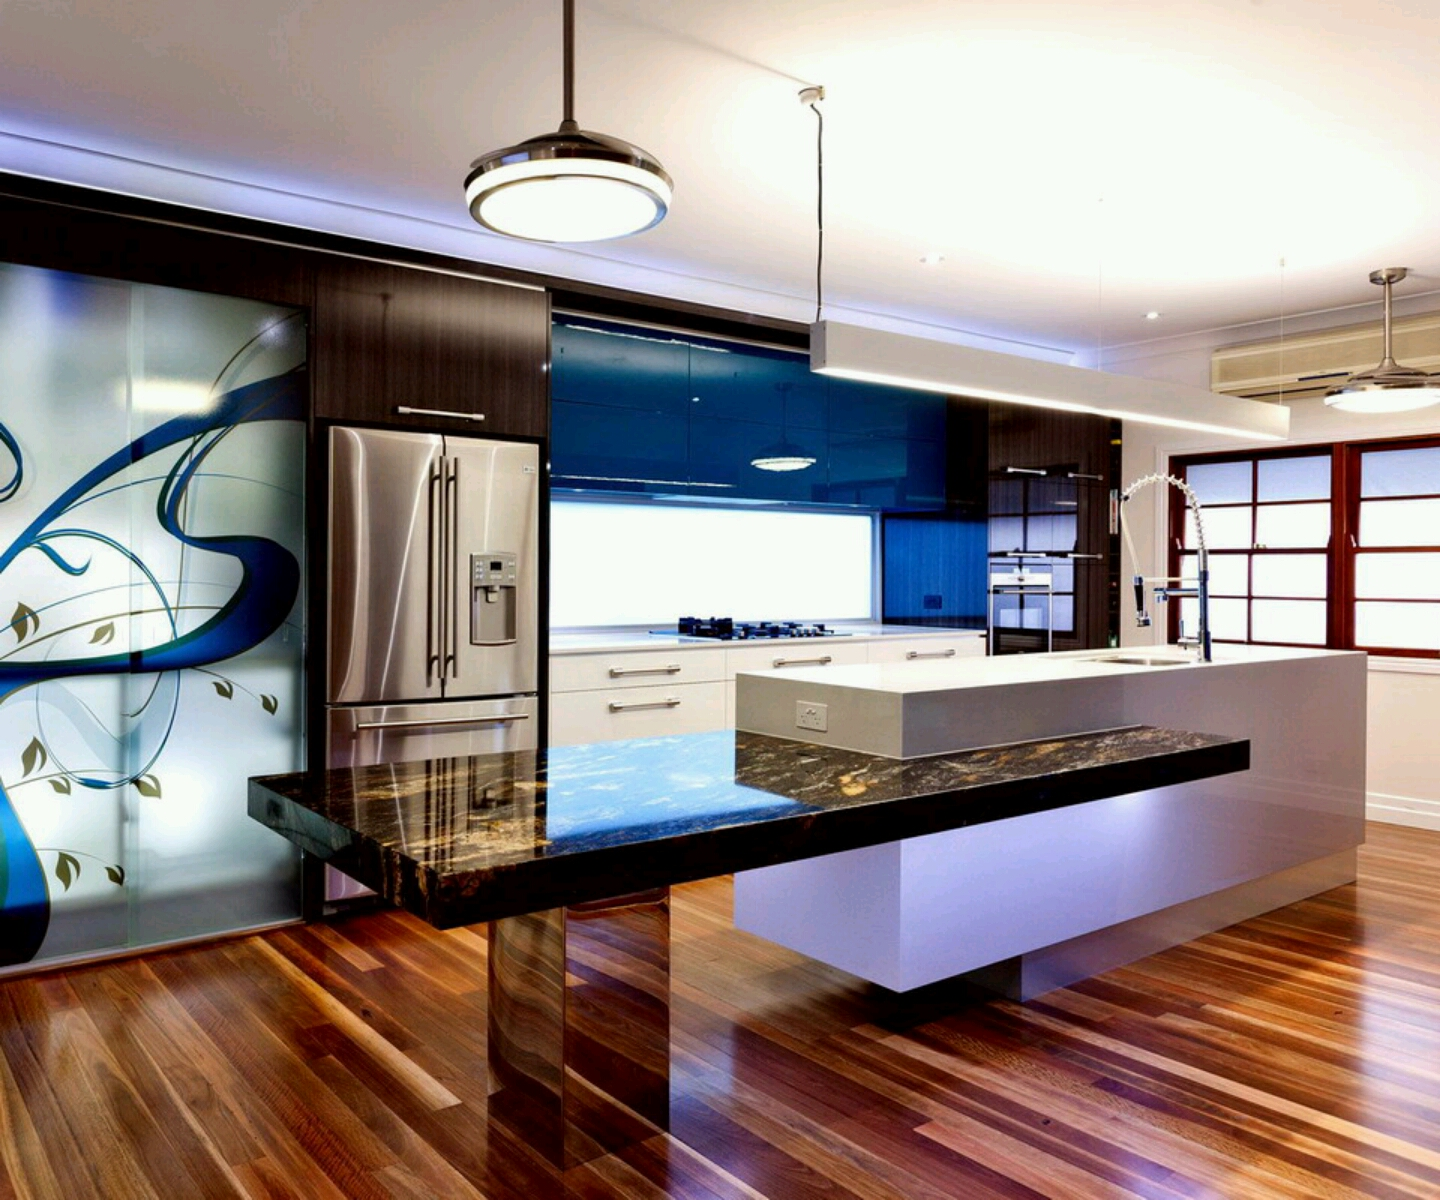 ultra modern kitchen designs ideas new home designs On new home kitchen designs